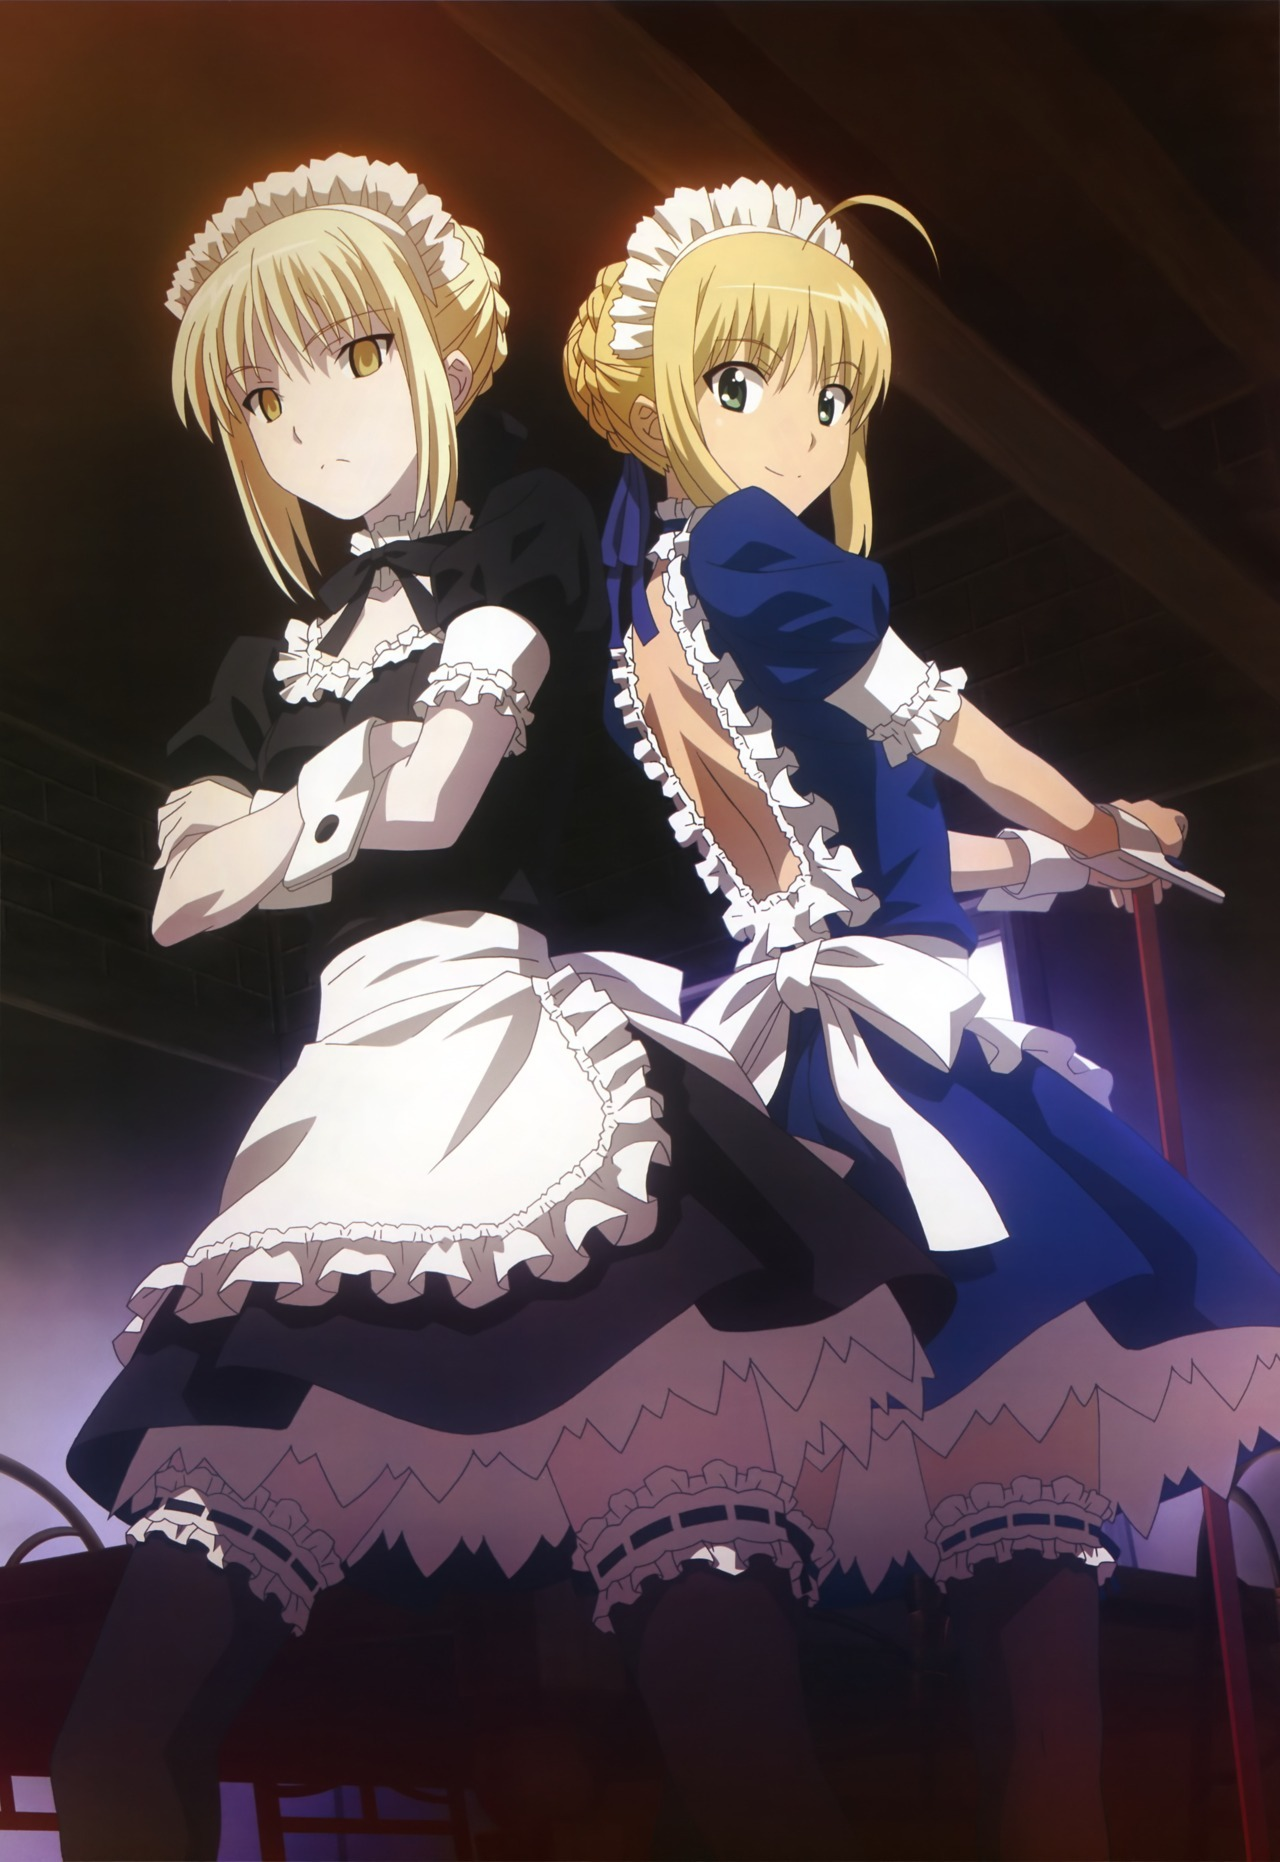 To not share this awesome Saber x Saber Alter maid pic would be a crime!!